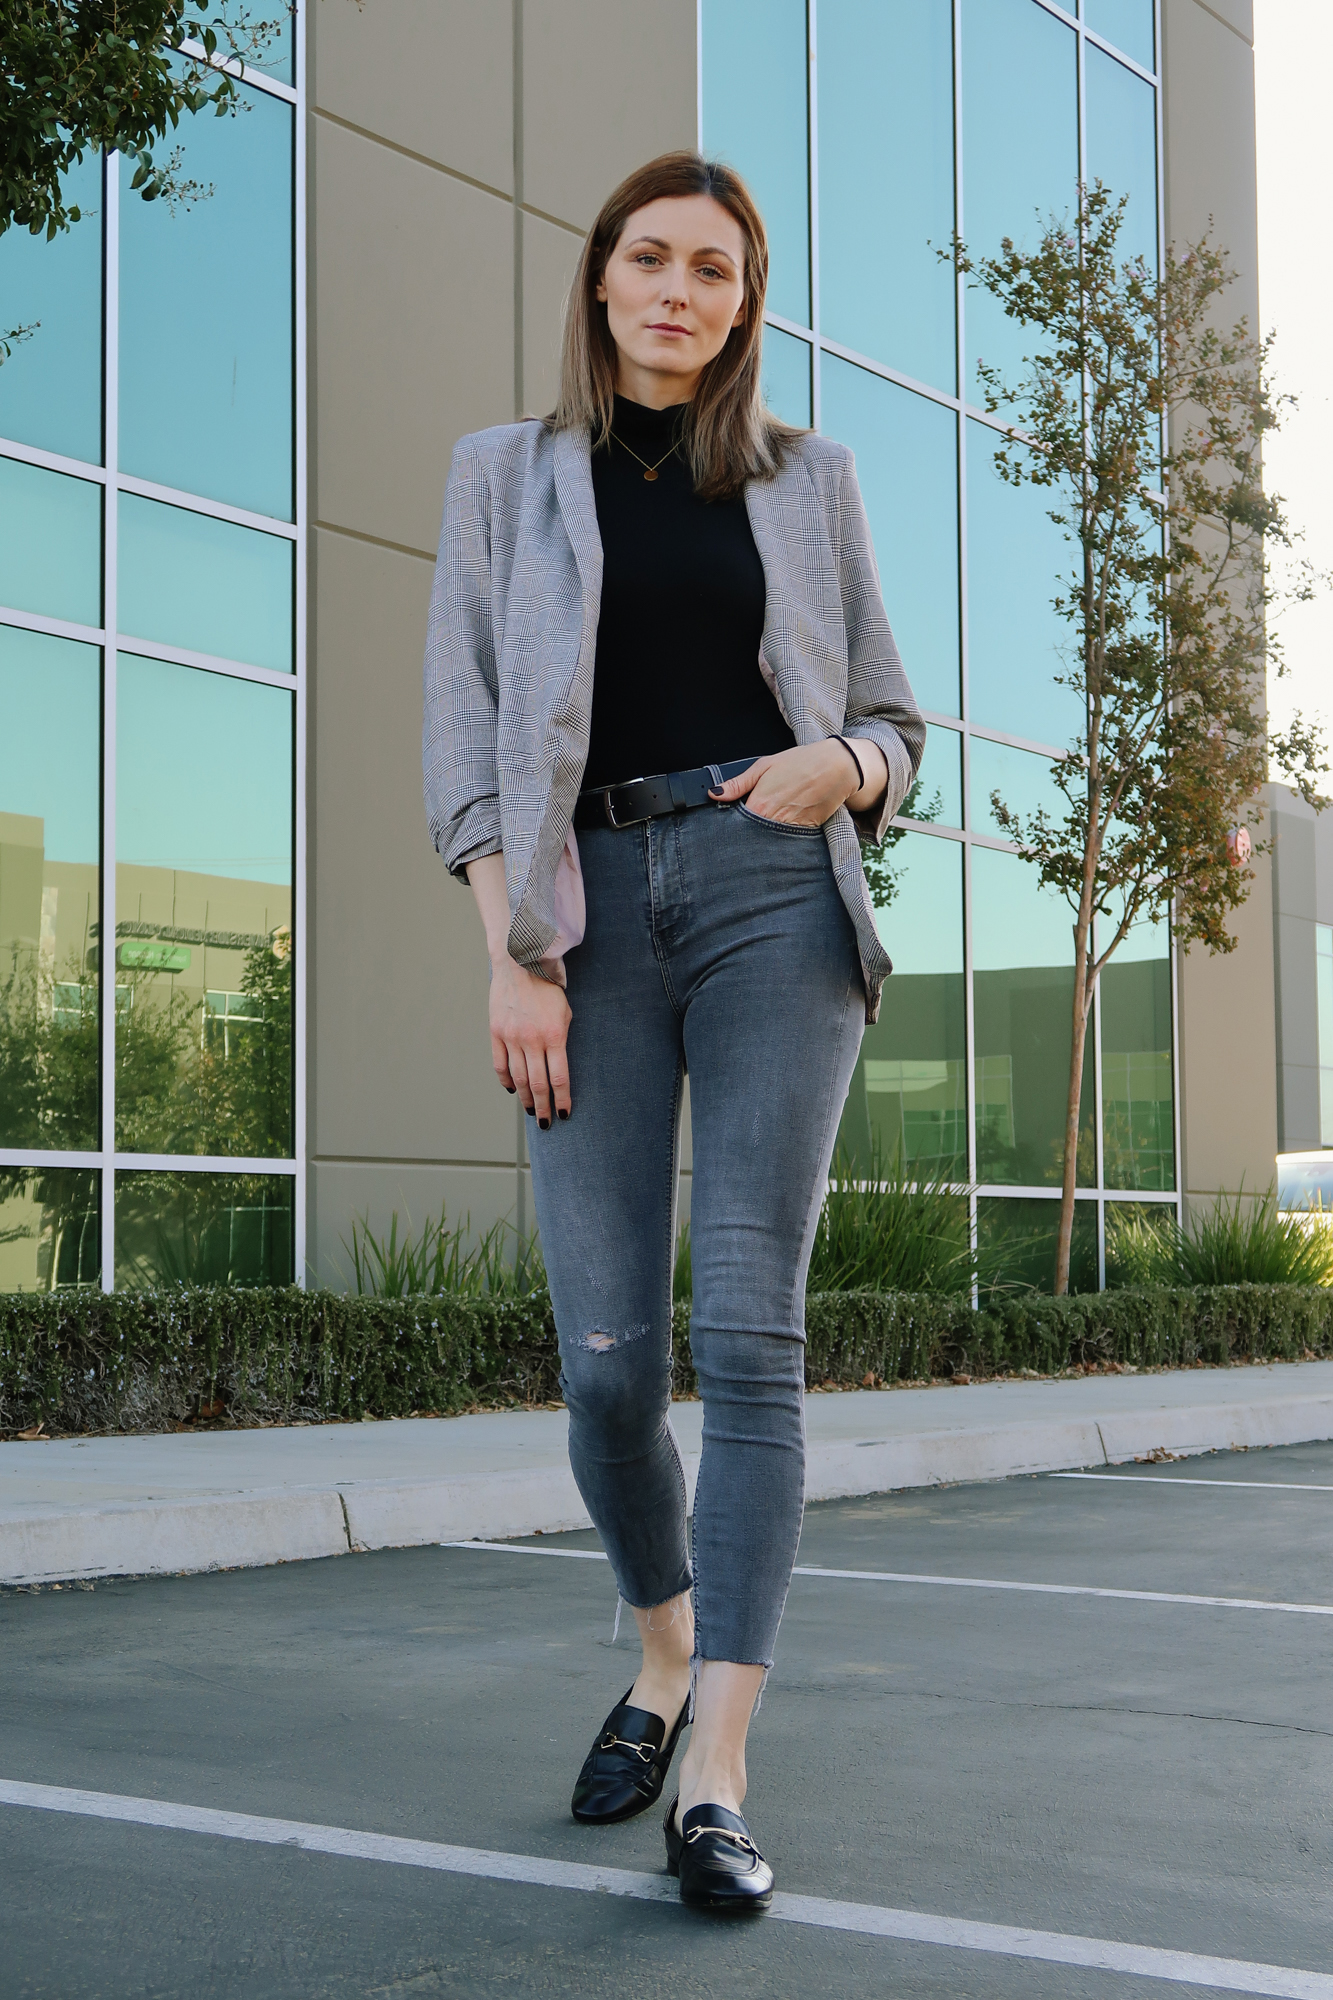 Casual outfit with a plaid blazer | Easy Casual Outfits To Try Right Now by popular California fashion blog, Tea Cups and Tulips: image of a woman outside wearing a SheIn Shawl Collar Pocket Patched Plaid Blazer, Amazon Happiness Boutique Circle Necklace, and Zara ZW PREMIUM SKINNY JEANS IN ARCTIC GRAY.